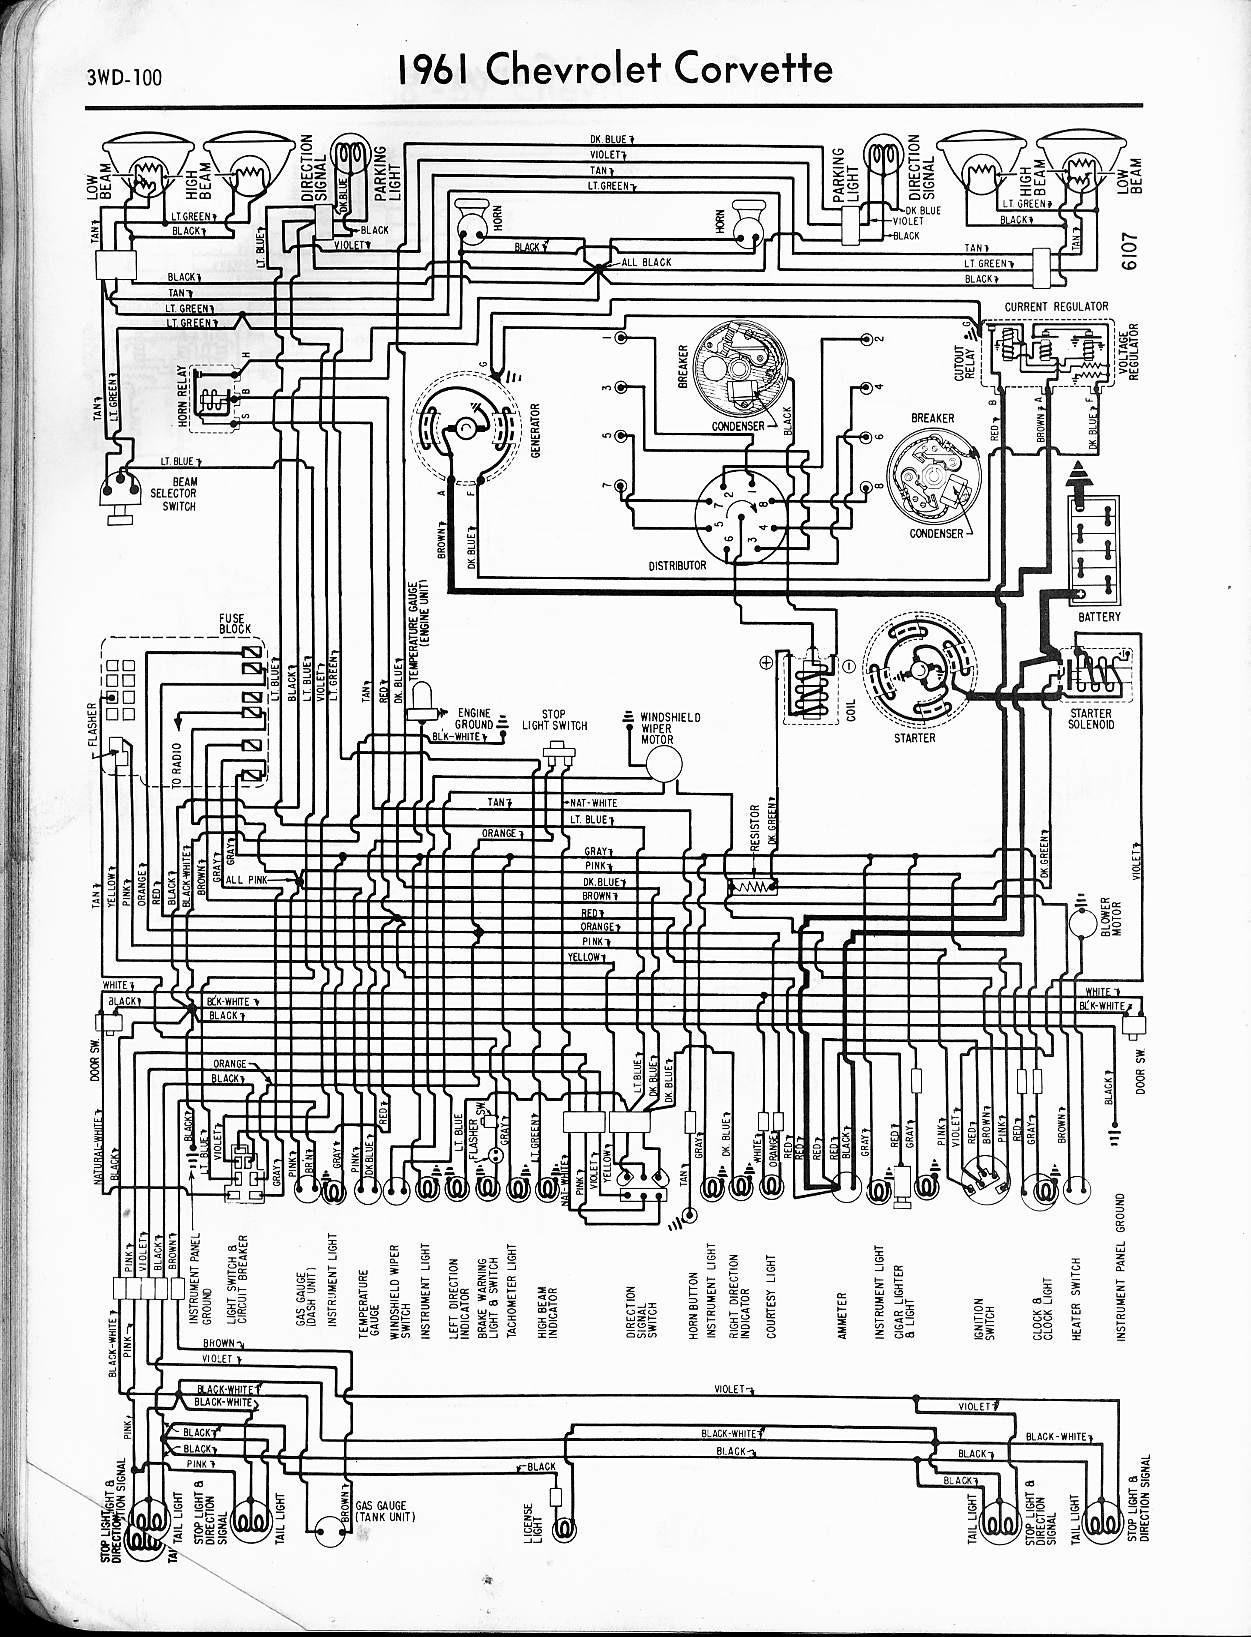 1977 chevrolet corvette wiring diagram free download diy rh okdrywall co